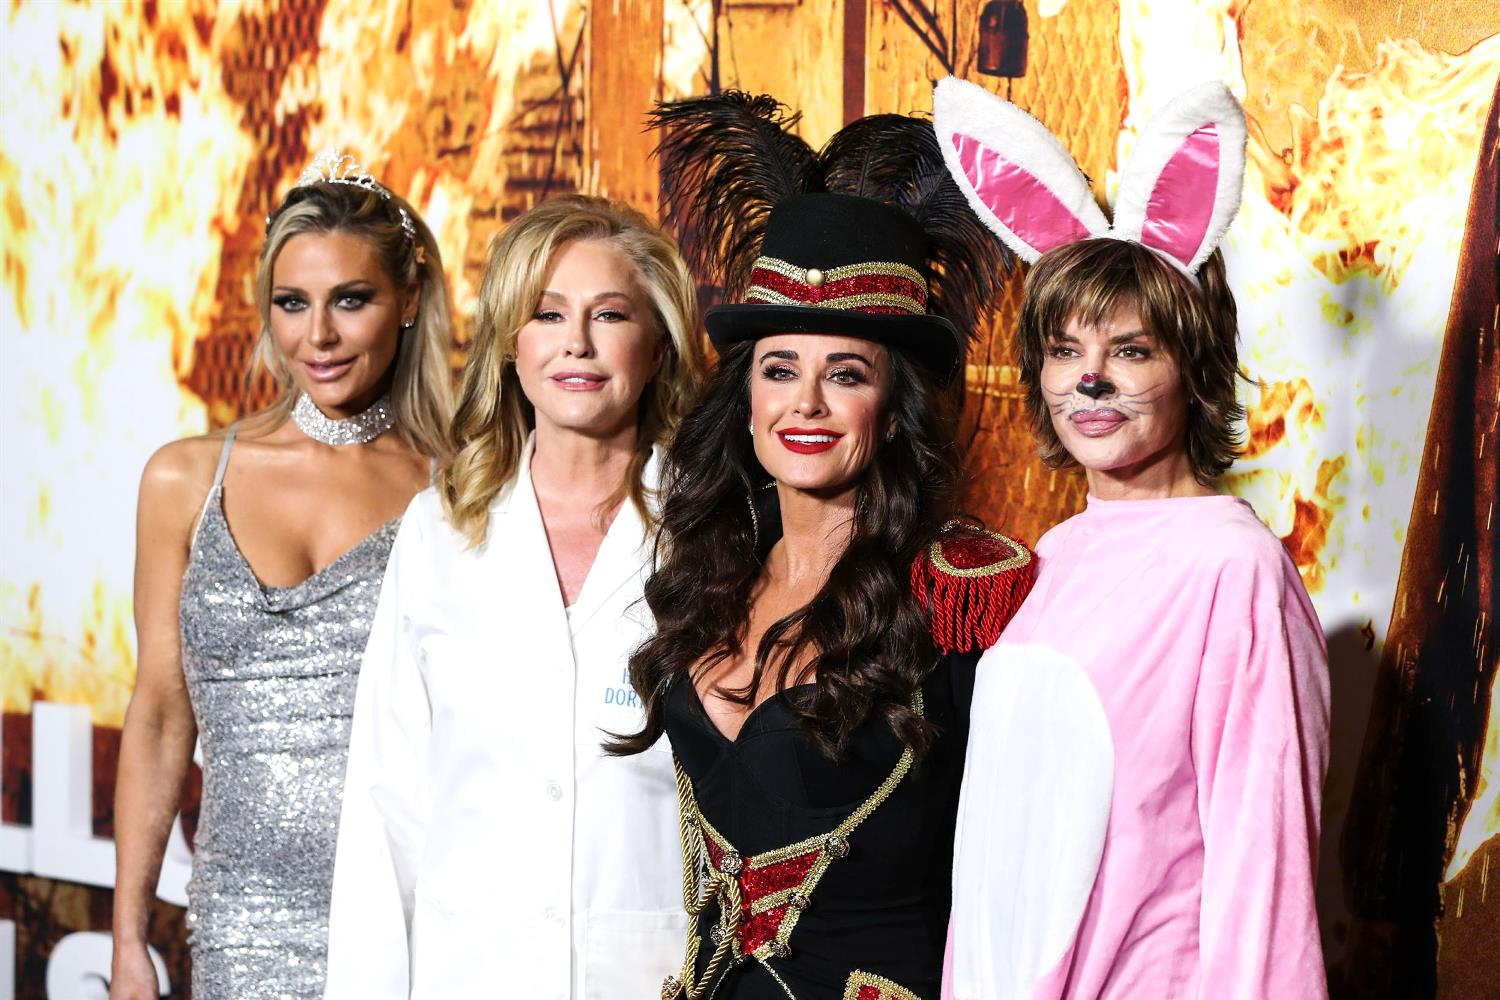 """PHOTOS: RHOBH Cast Attends Kyle Richards' Movie Premiere For Halloween Kills in Costumes, See Kathy Hilton as """"Hunky Dory, DDS"""" and Dorit Kemsley as Paris Hilton, Plus Teddi"""